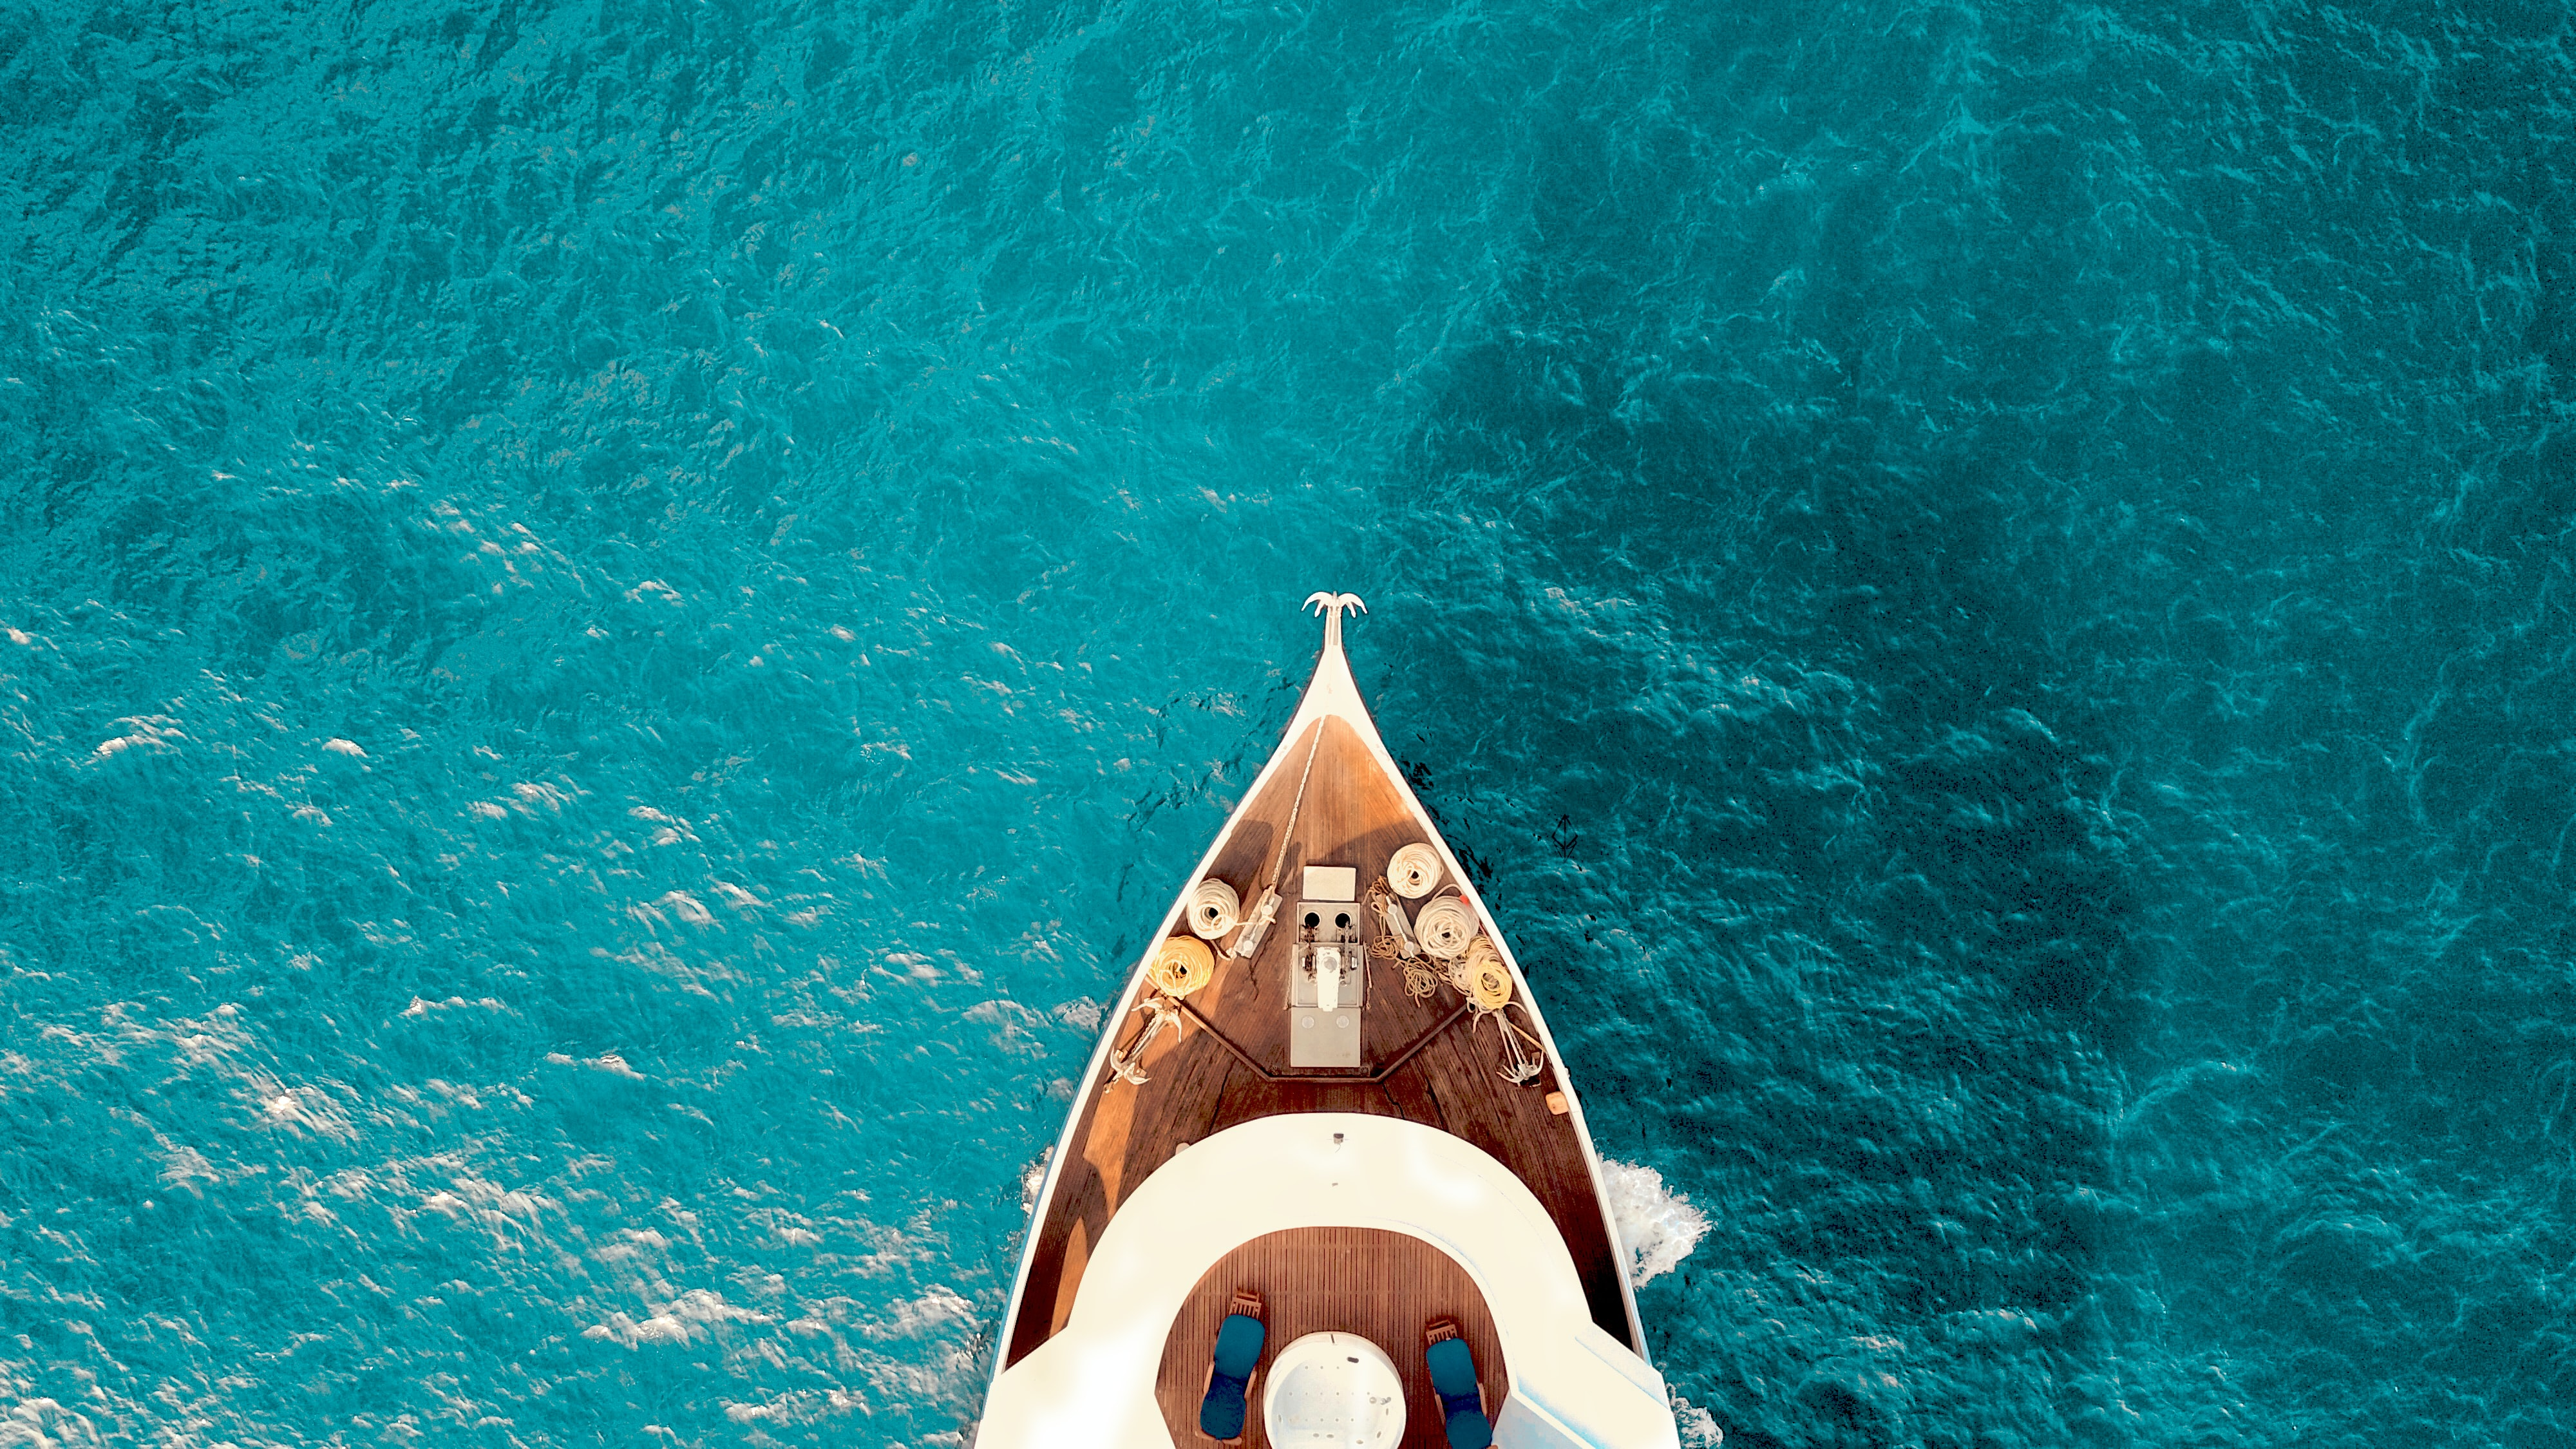 birds eye photography of boat on body of water